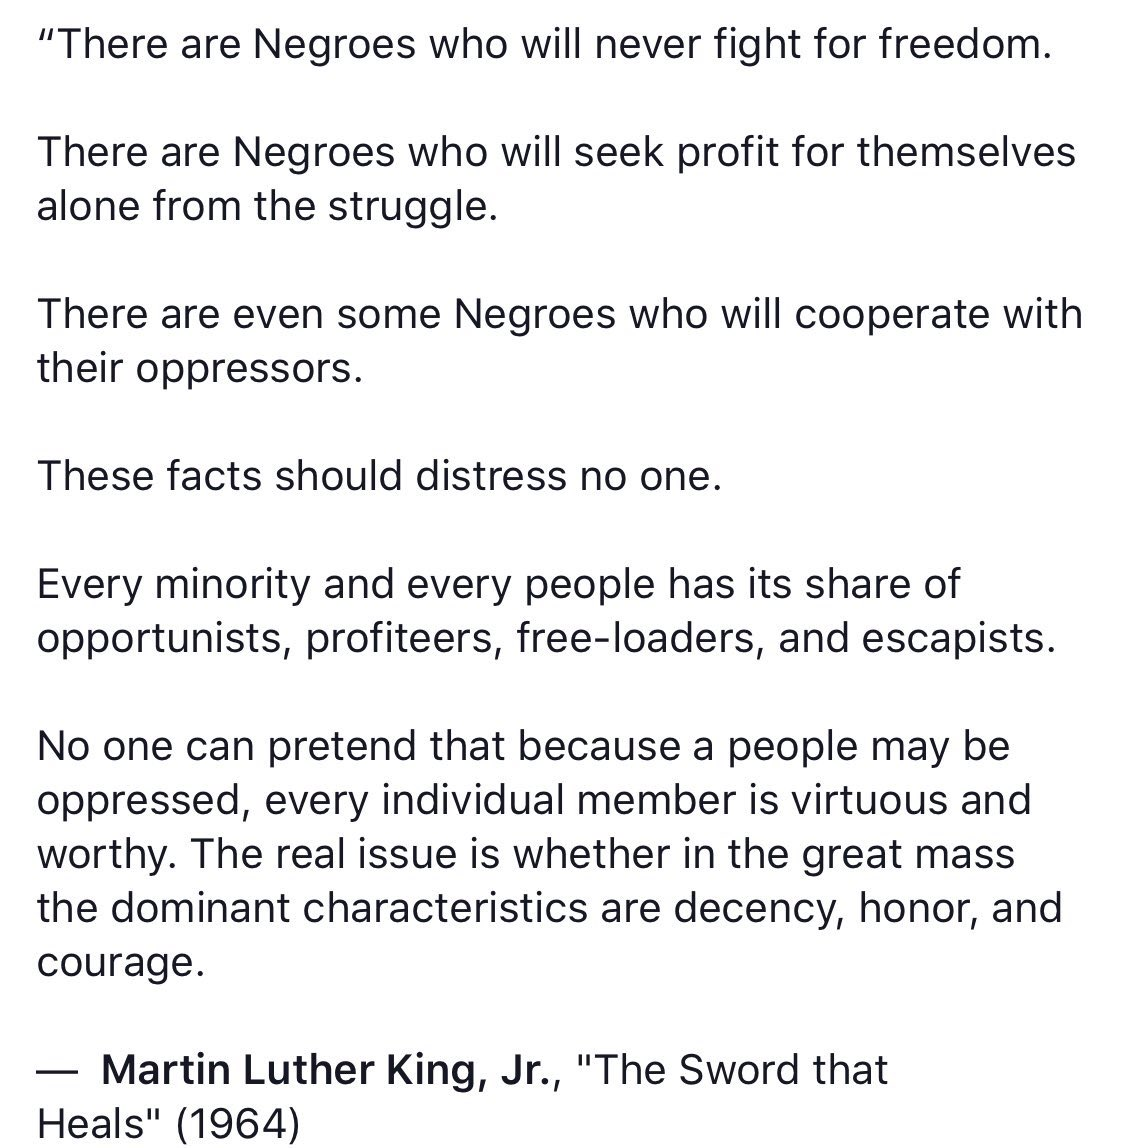 @TalbertSwan MLK and KAM described them perfectly👇🏾